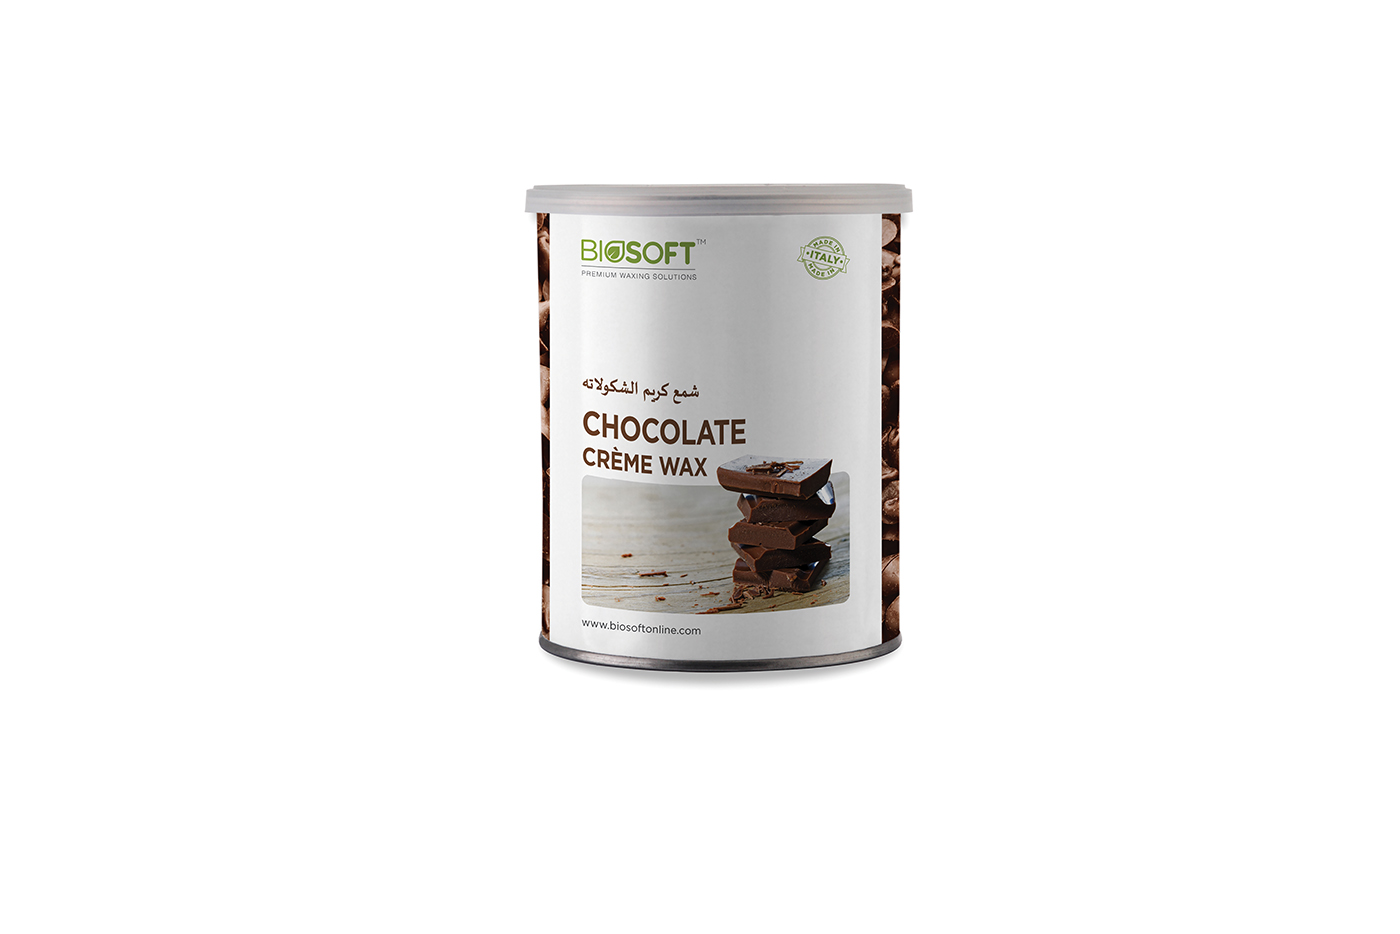 Biosoft Liposoluble Chocolate Crème Wax